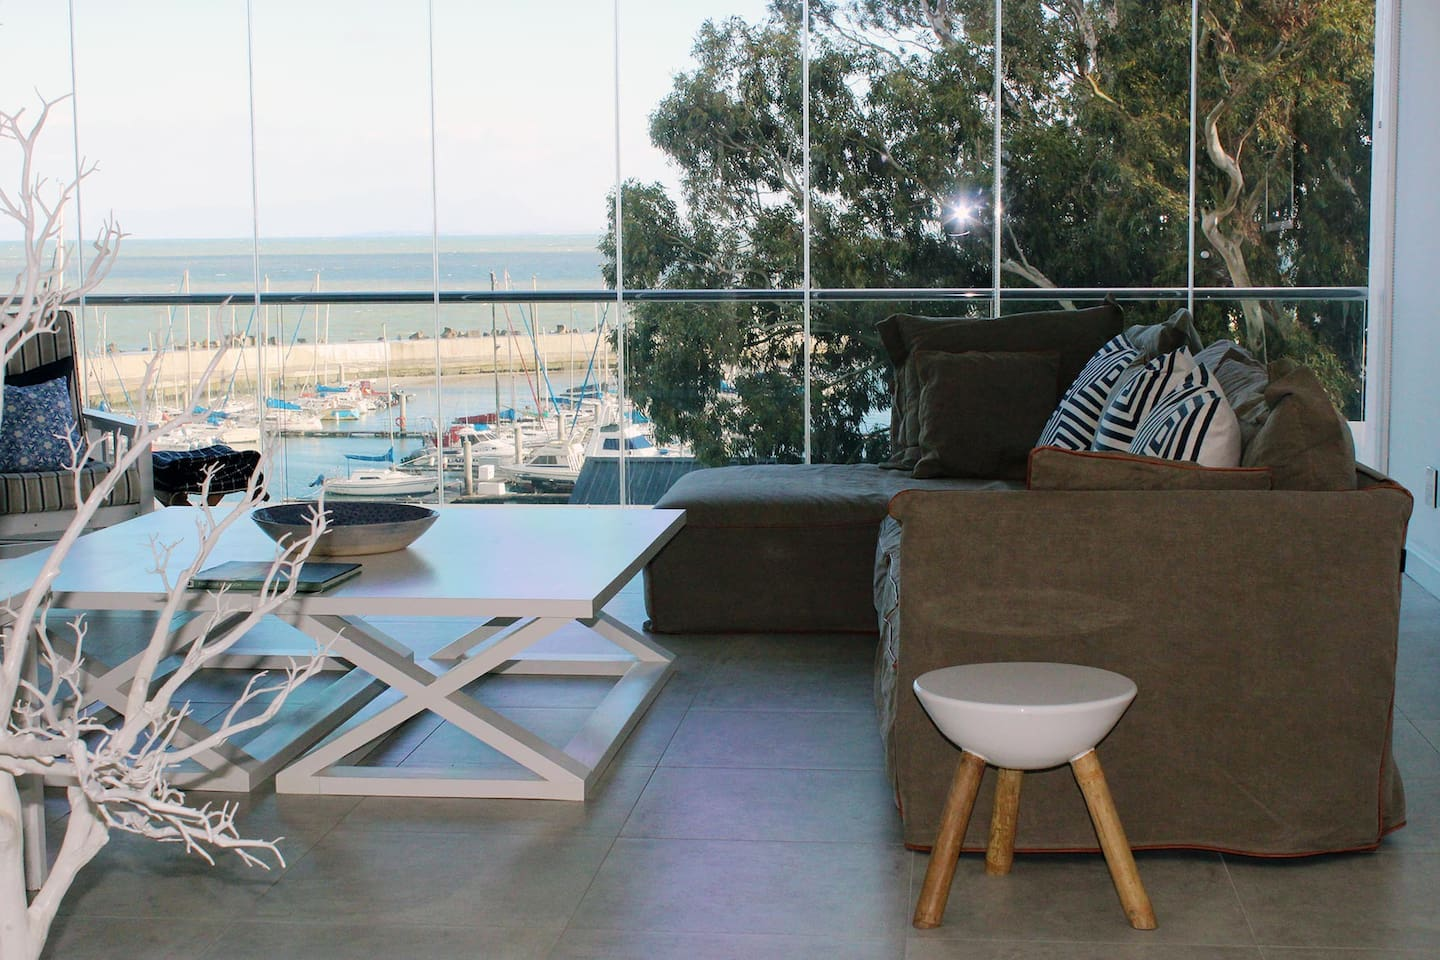 Fabulously located on Beach road, super close to Bikini Beach. This modern apartment boasts the best ocean and harbour views